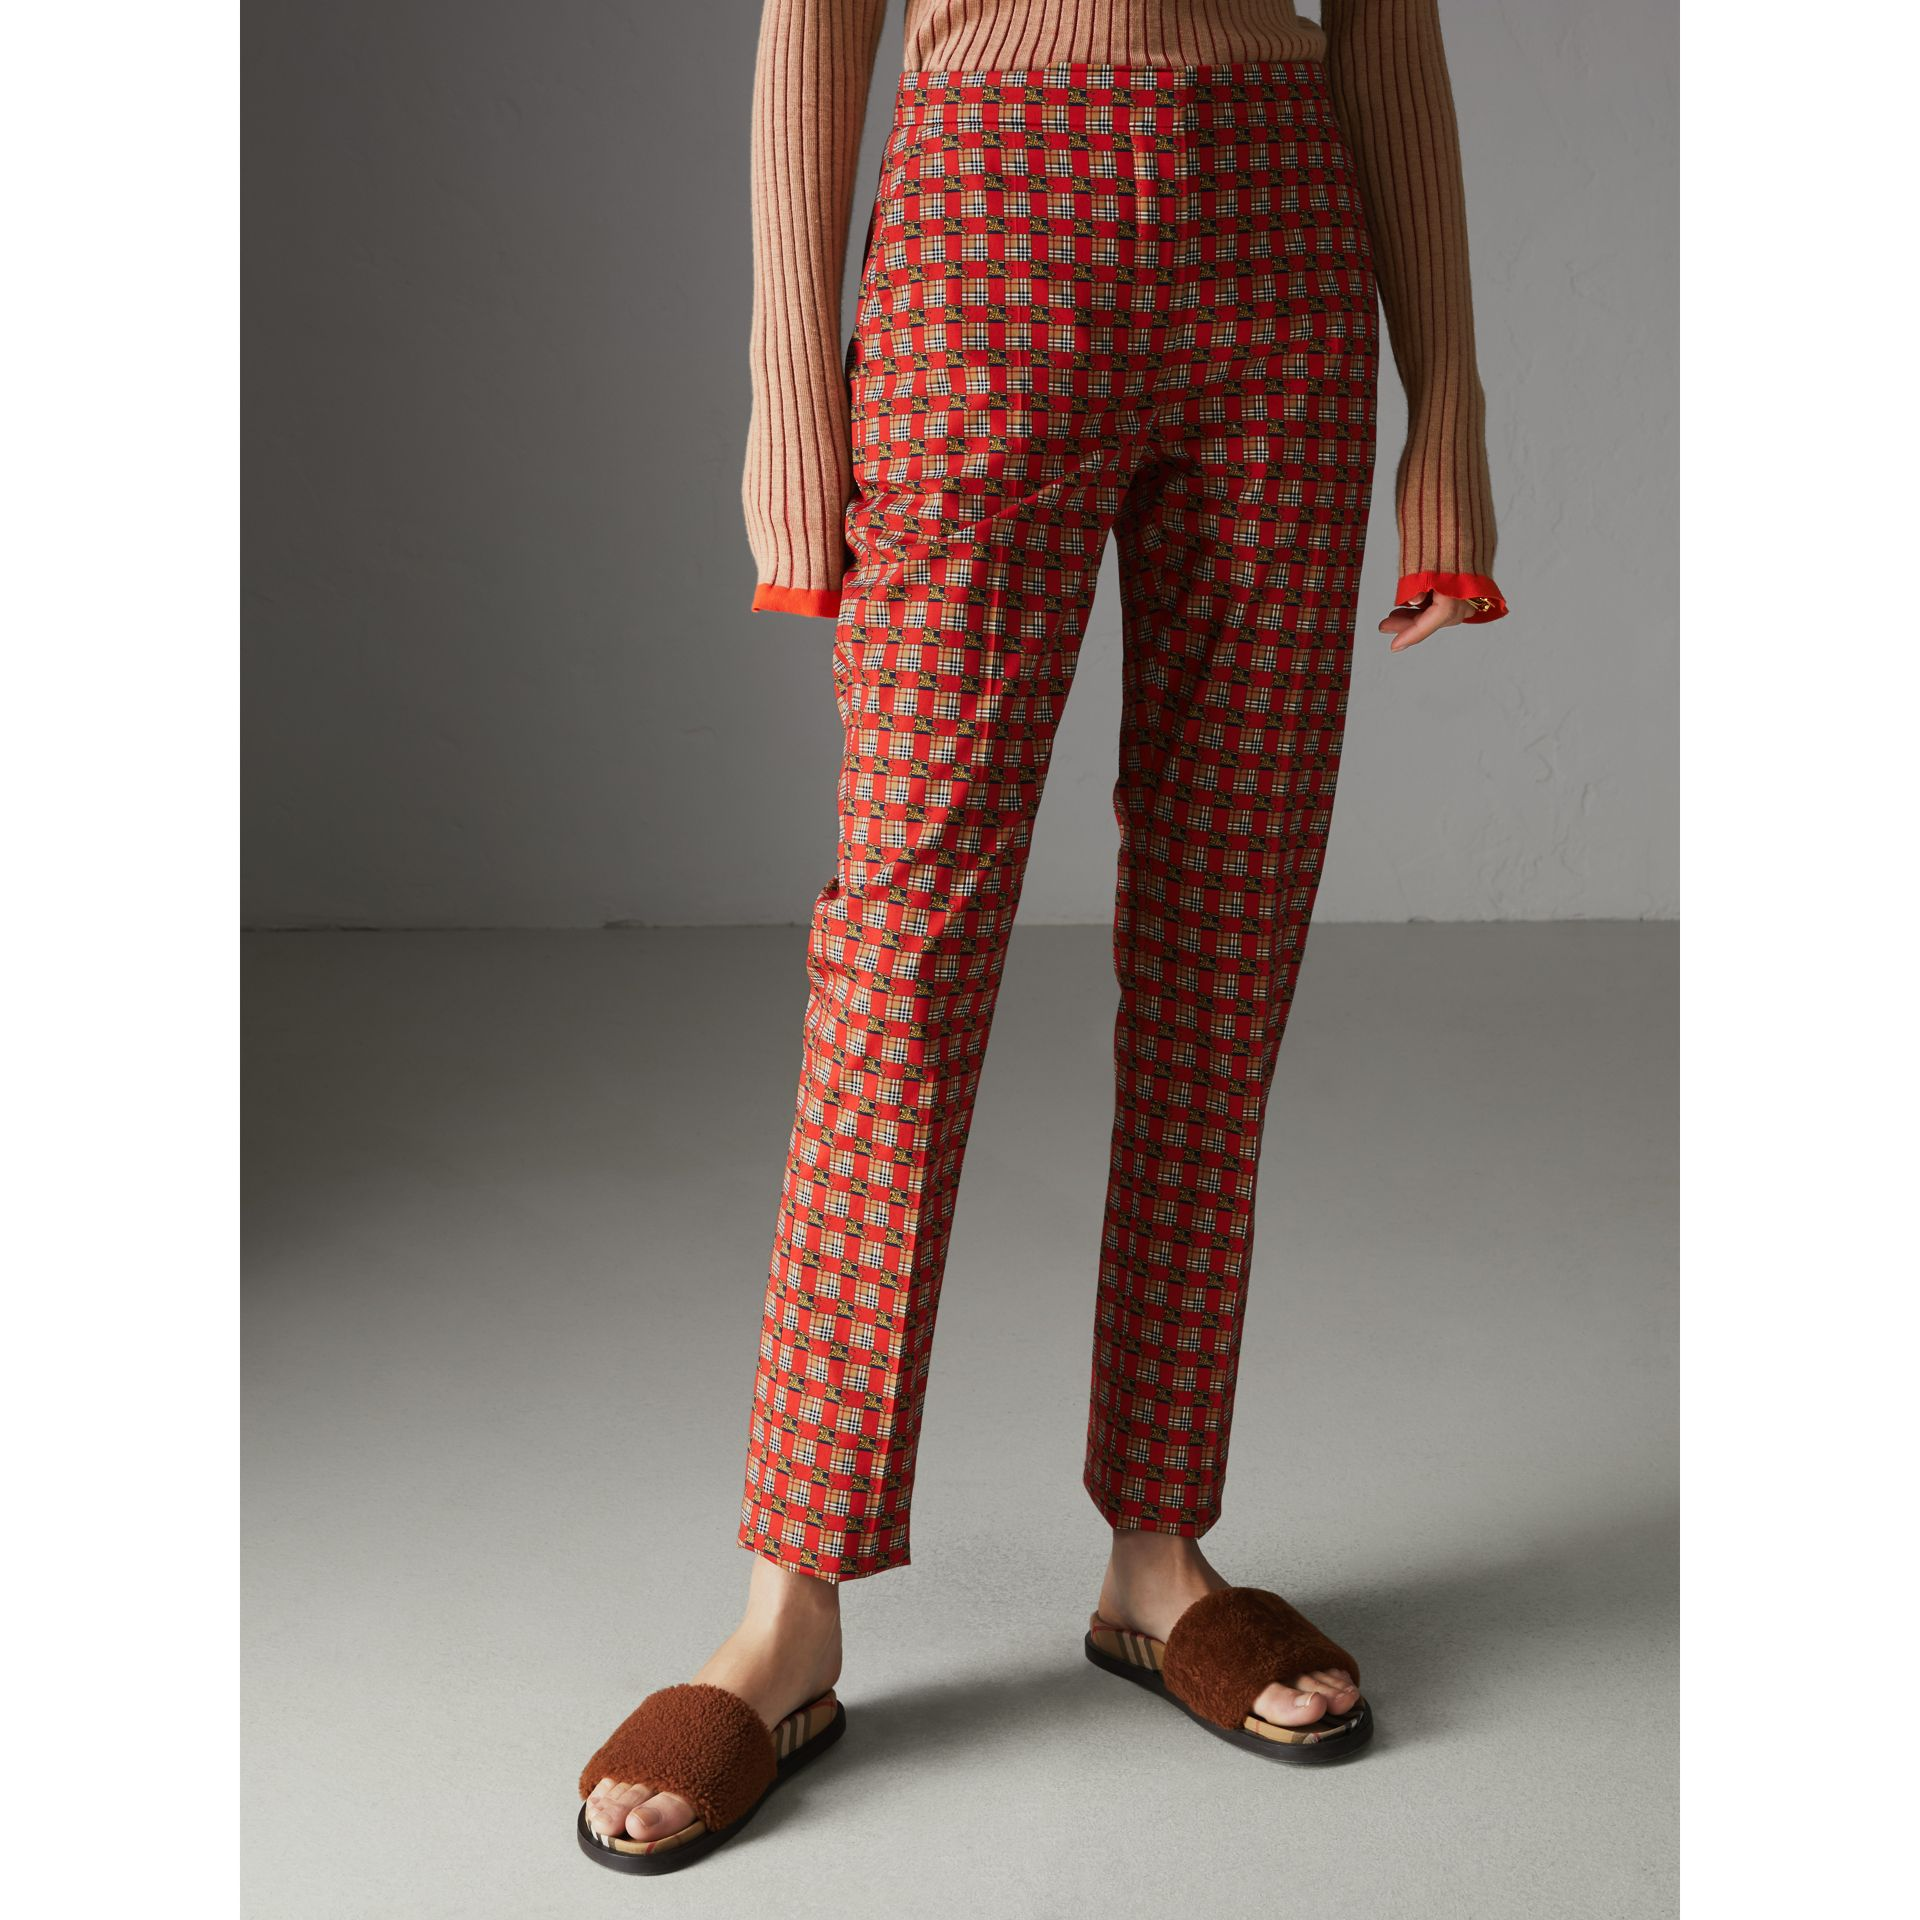 Tiled Archive Print Stretch Cotton Cigarette Trousers in Orange Red - Women | Burberry Australia - gallery image 5